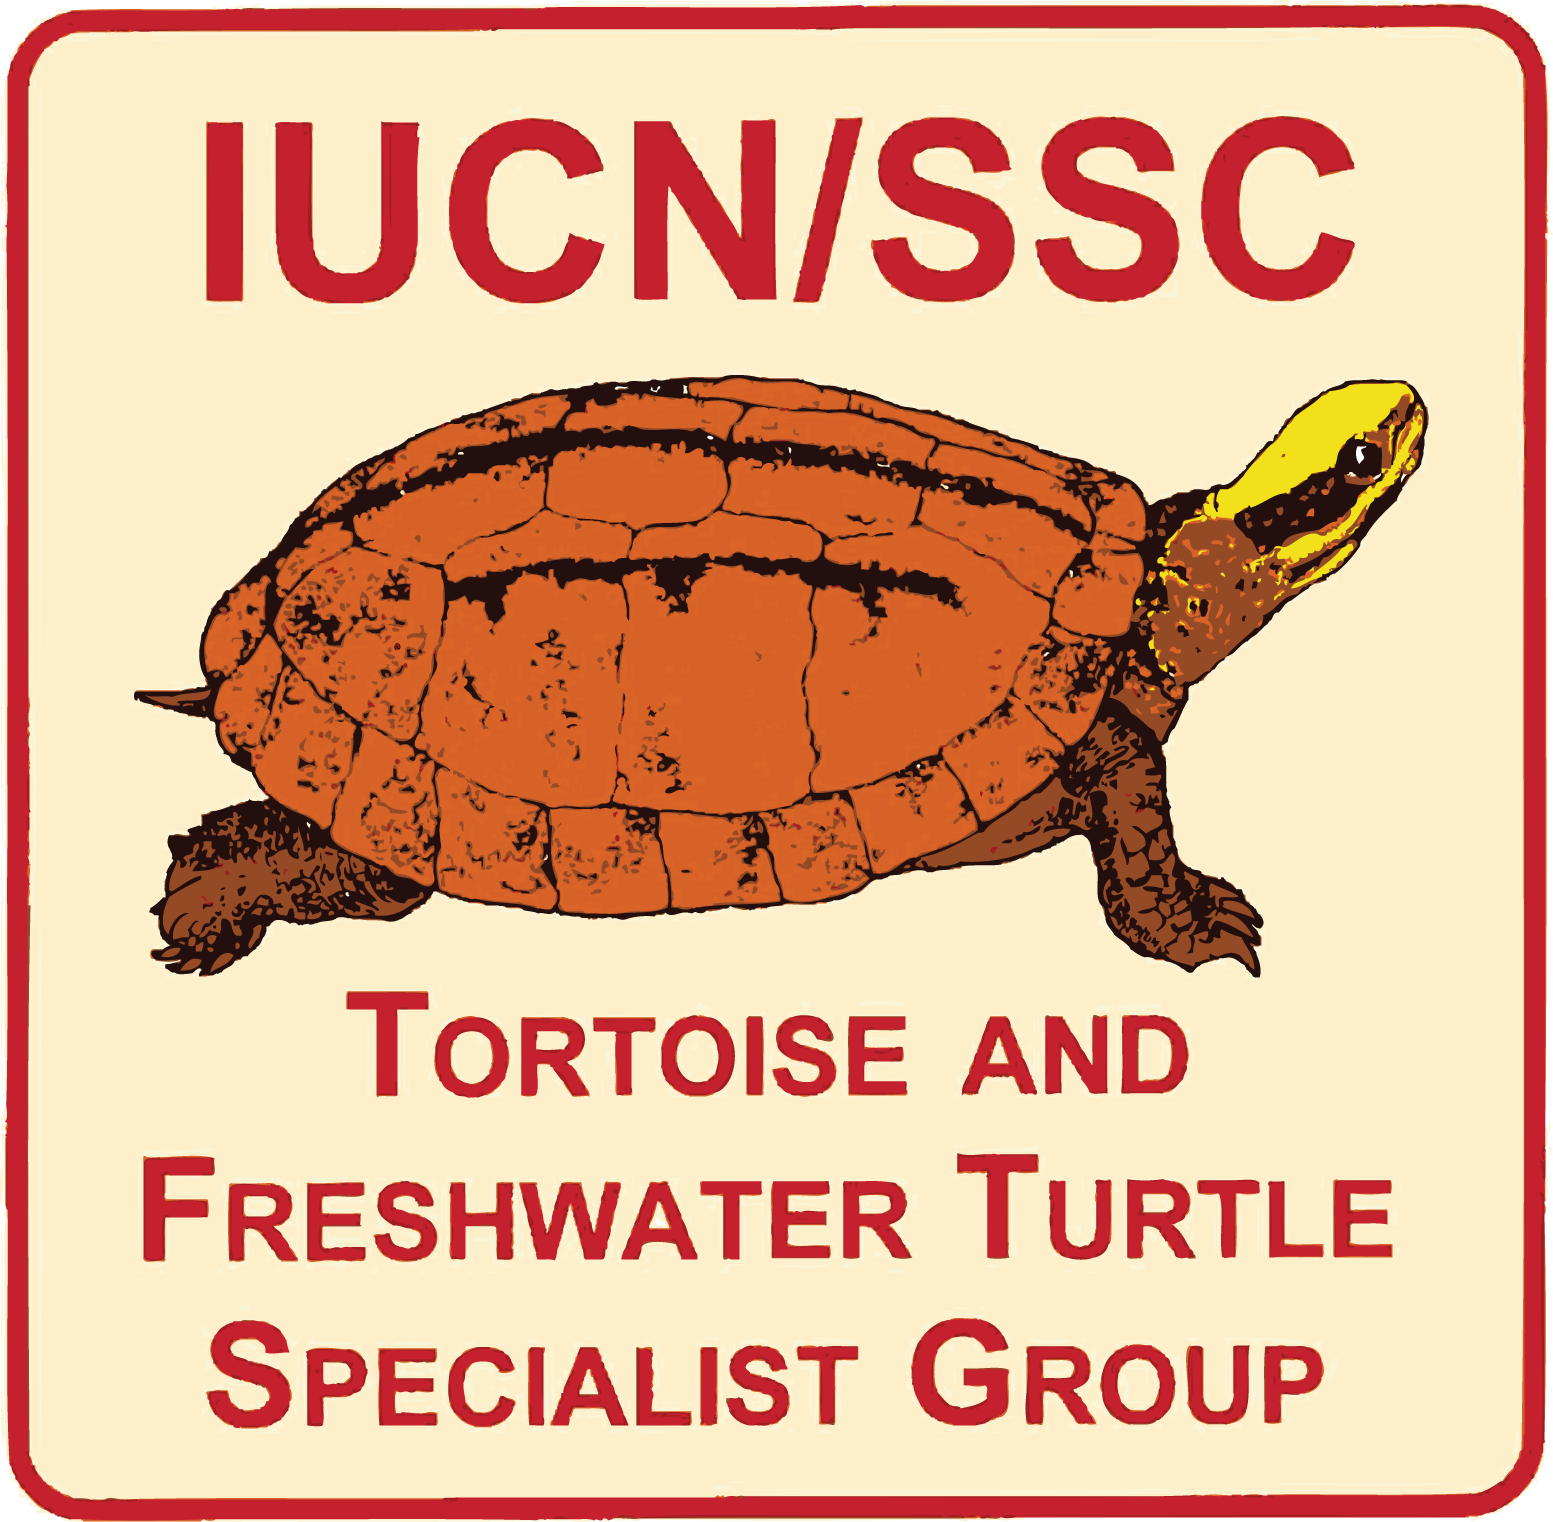 IUCN Tortoise and Freshwater Turtle Specialist Group